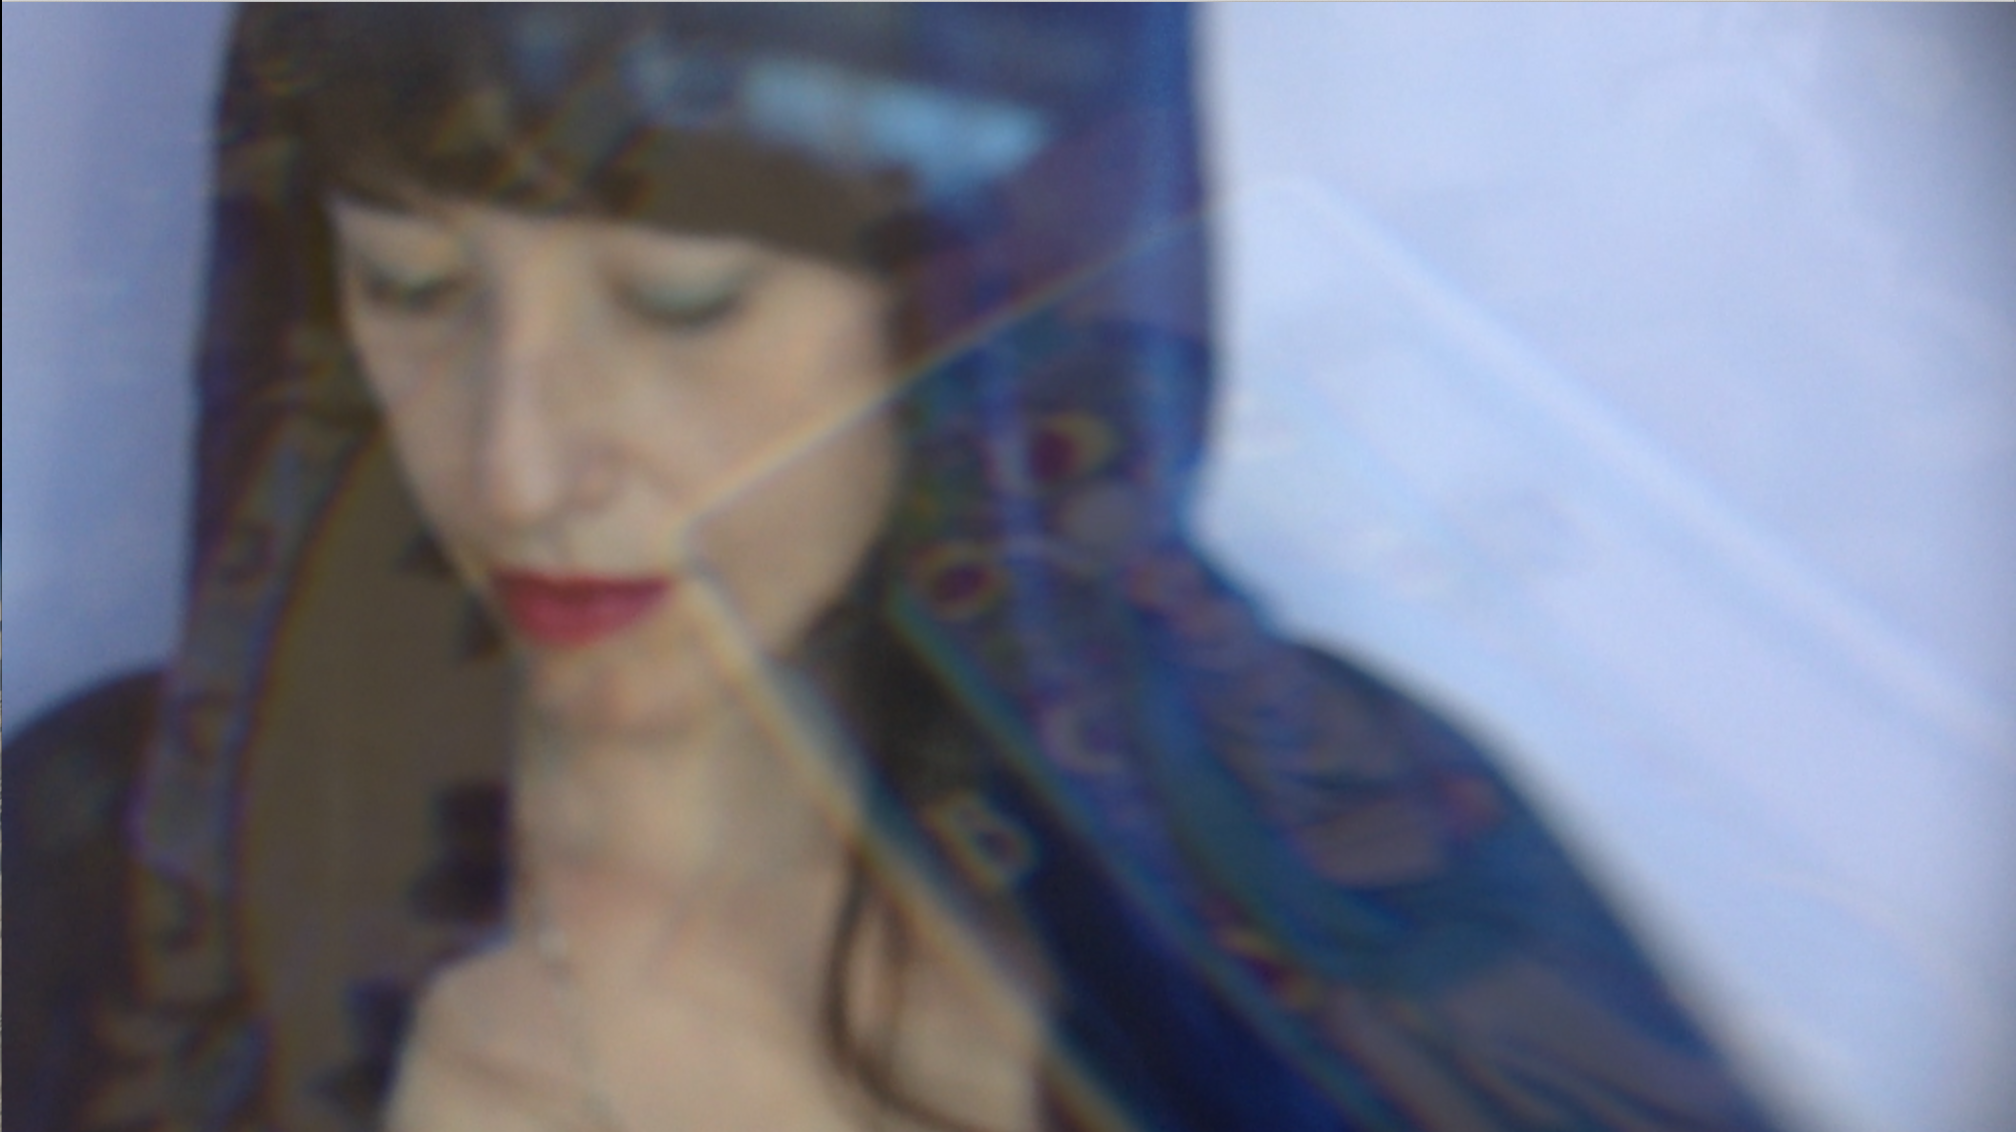 THE TAROT WOMAN - Tarot readings in the Bay Area and beyond